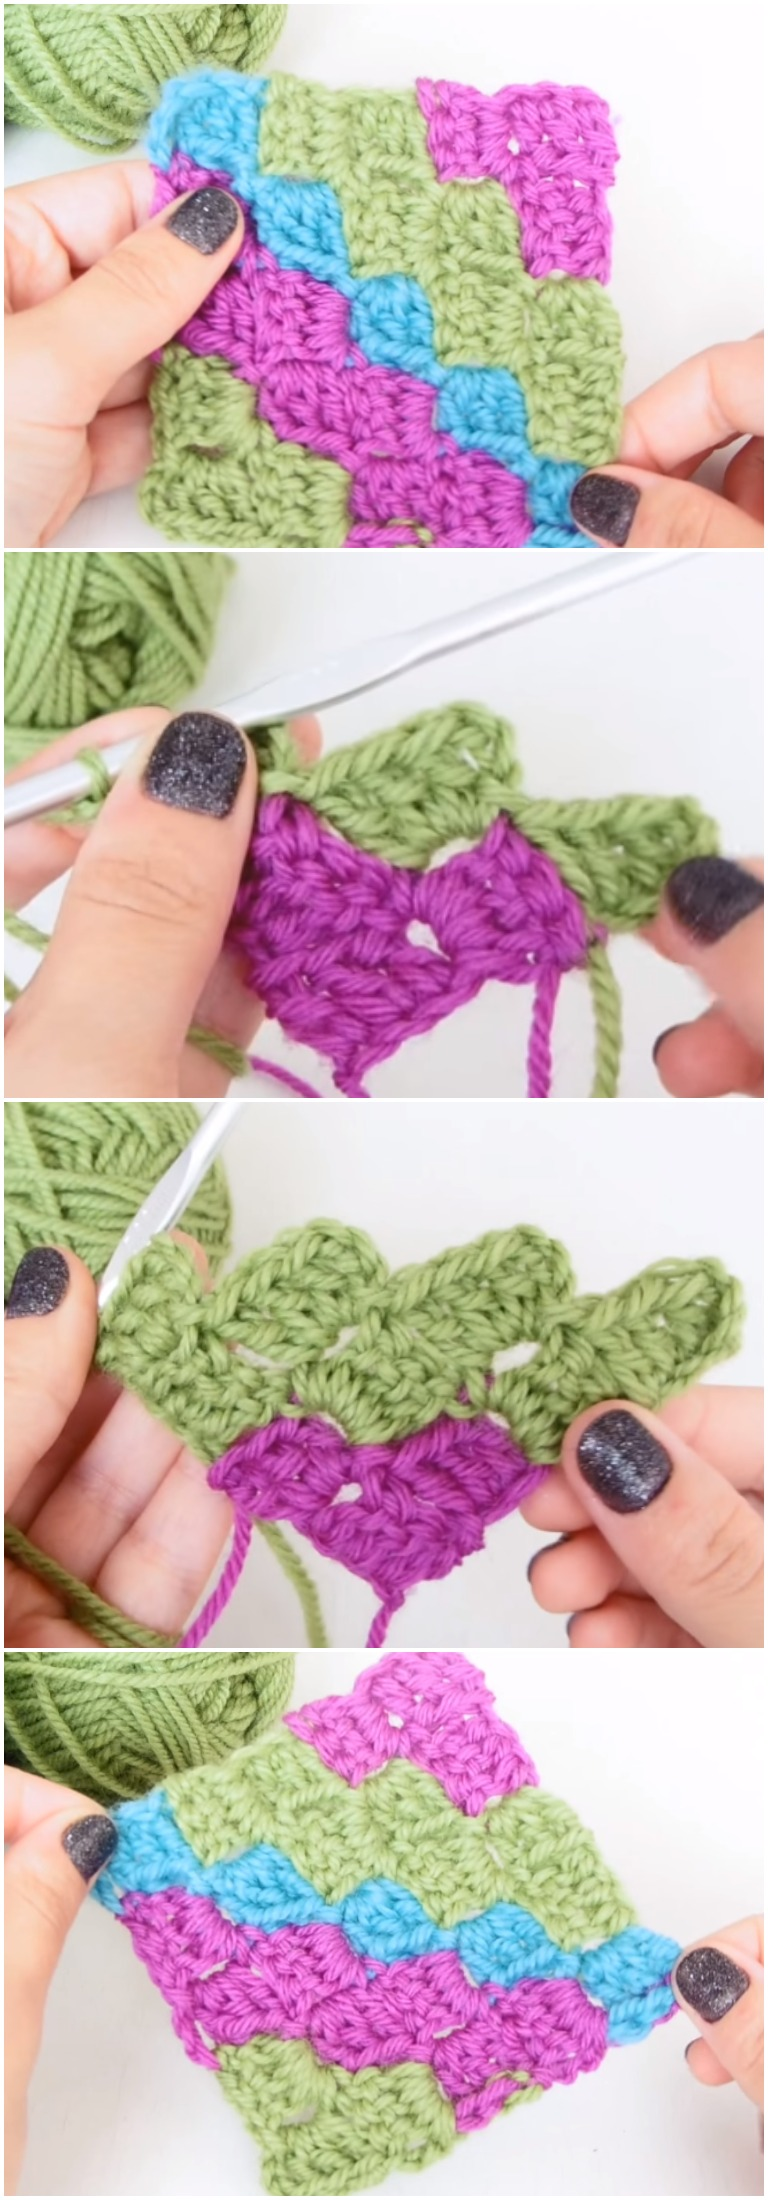 Learn To Crochet C2C Corner to Corner Free [Video] Instructions